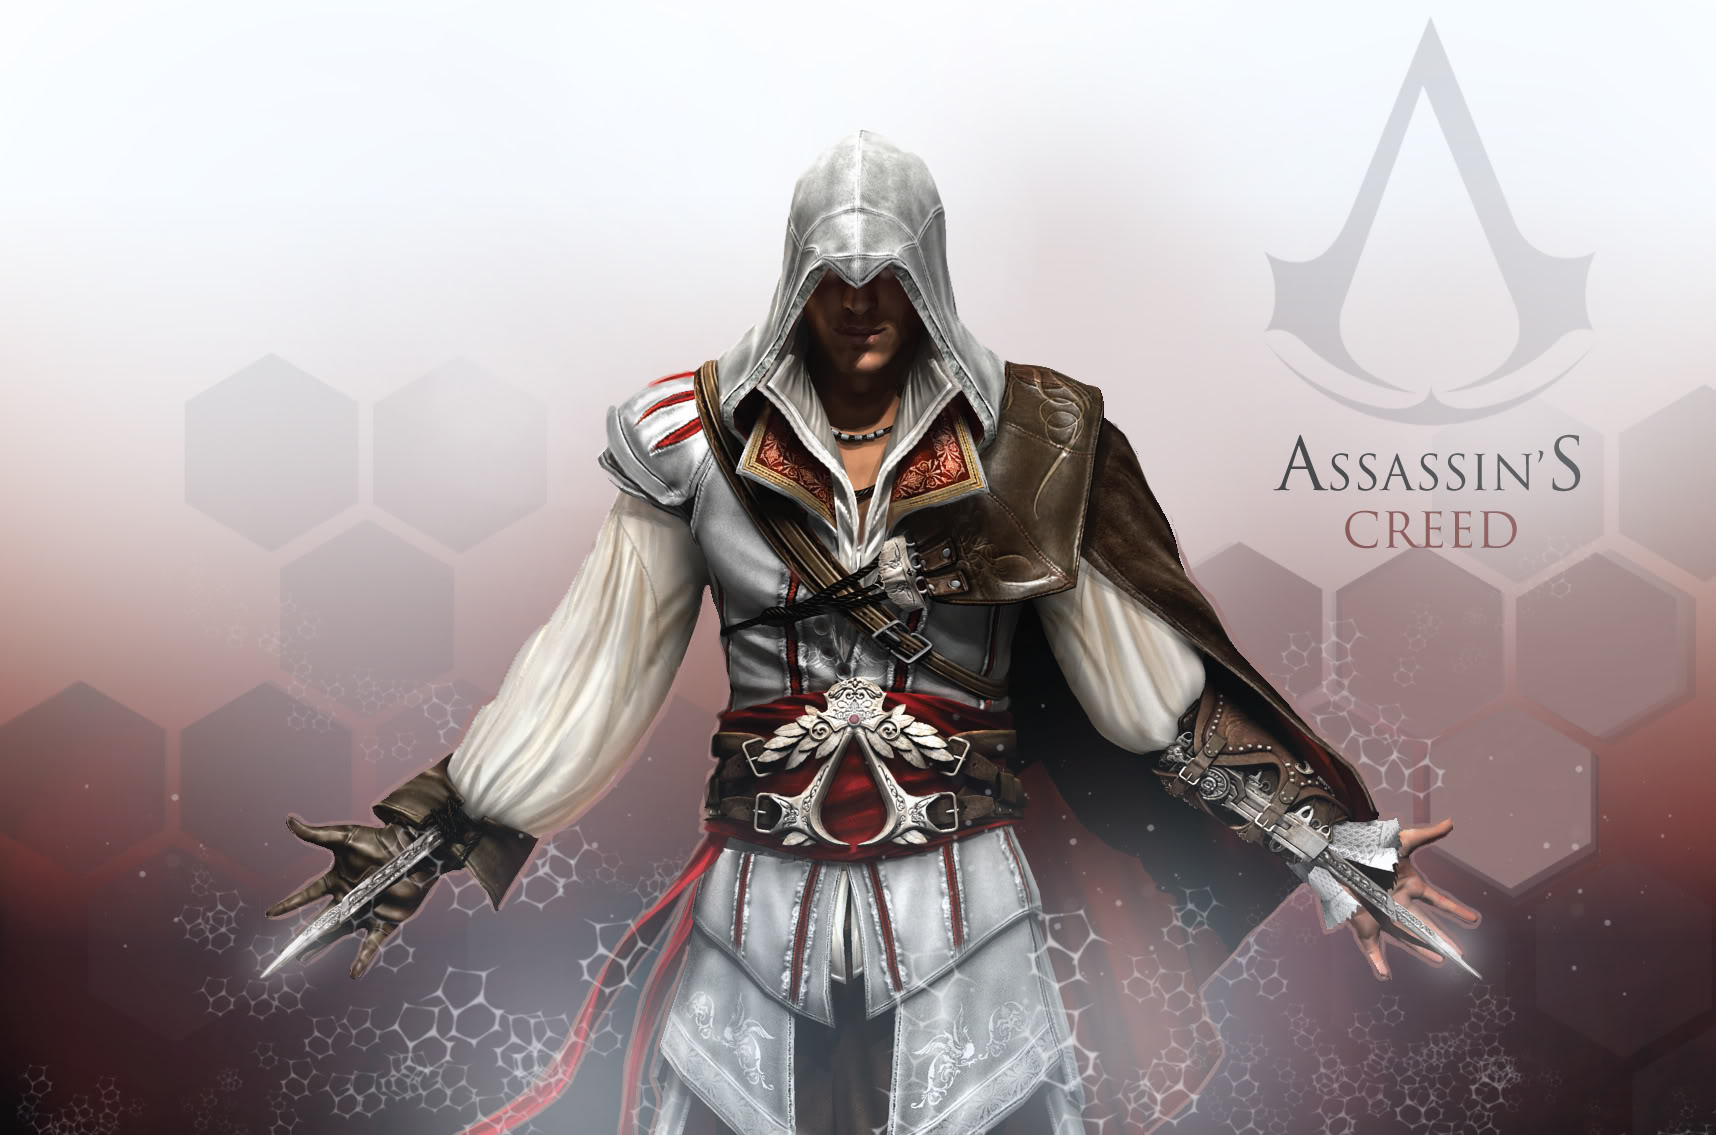 Assassins Creed Hd Wallpapers in Games Imagesci com 1716x1135